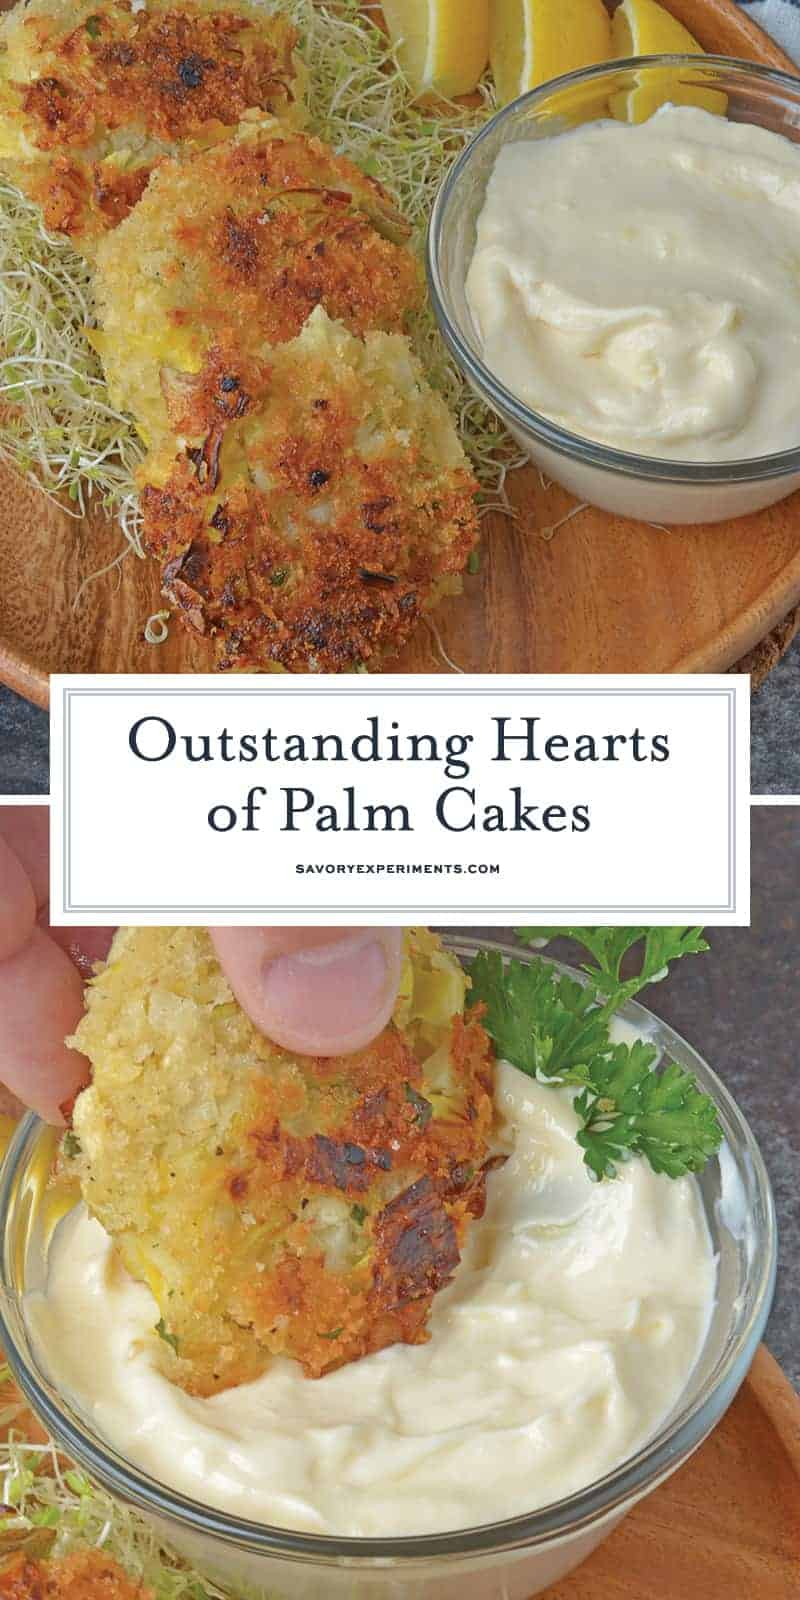 Hearts of Palm Cakes are crunchy cakes made with hearts of palm, artichokes, garlic and panko served with a zesty garlic aioli. #heartsofpalm #vegetariancrabcakes www.savoryexperiments.com